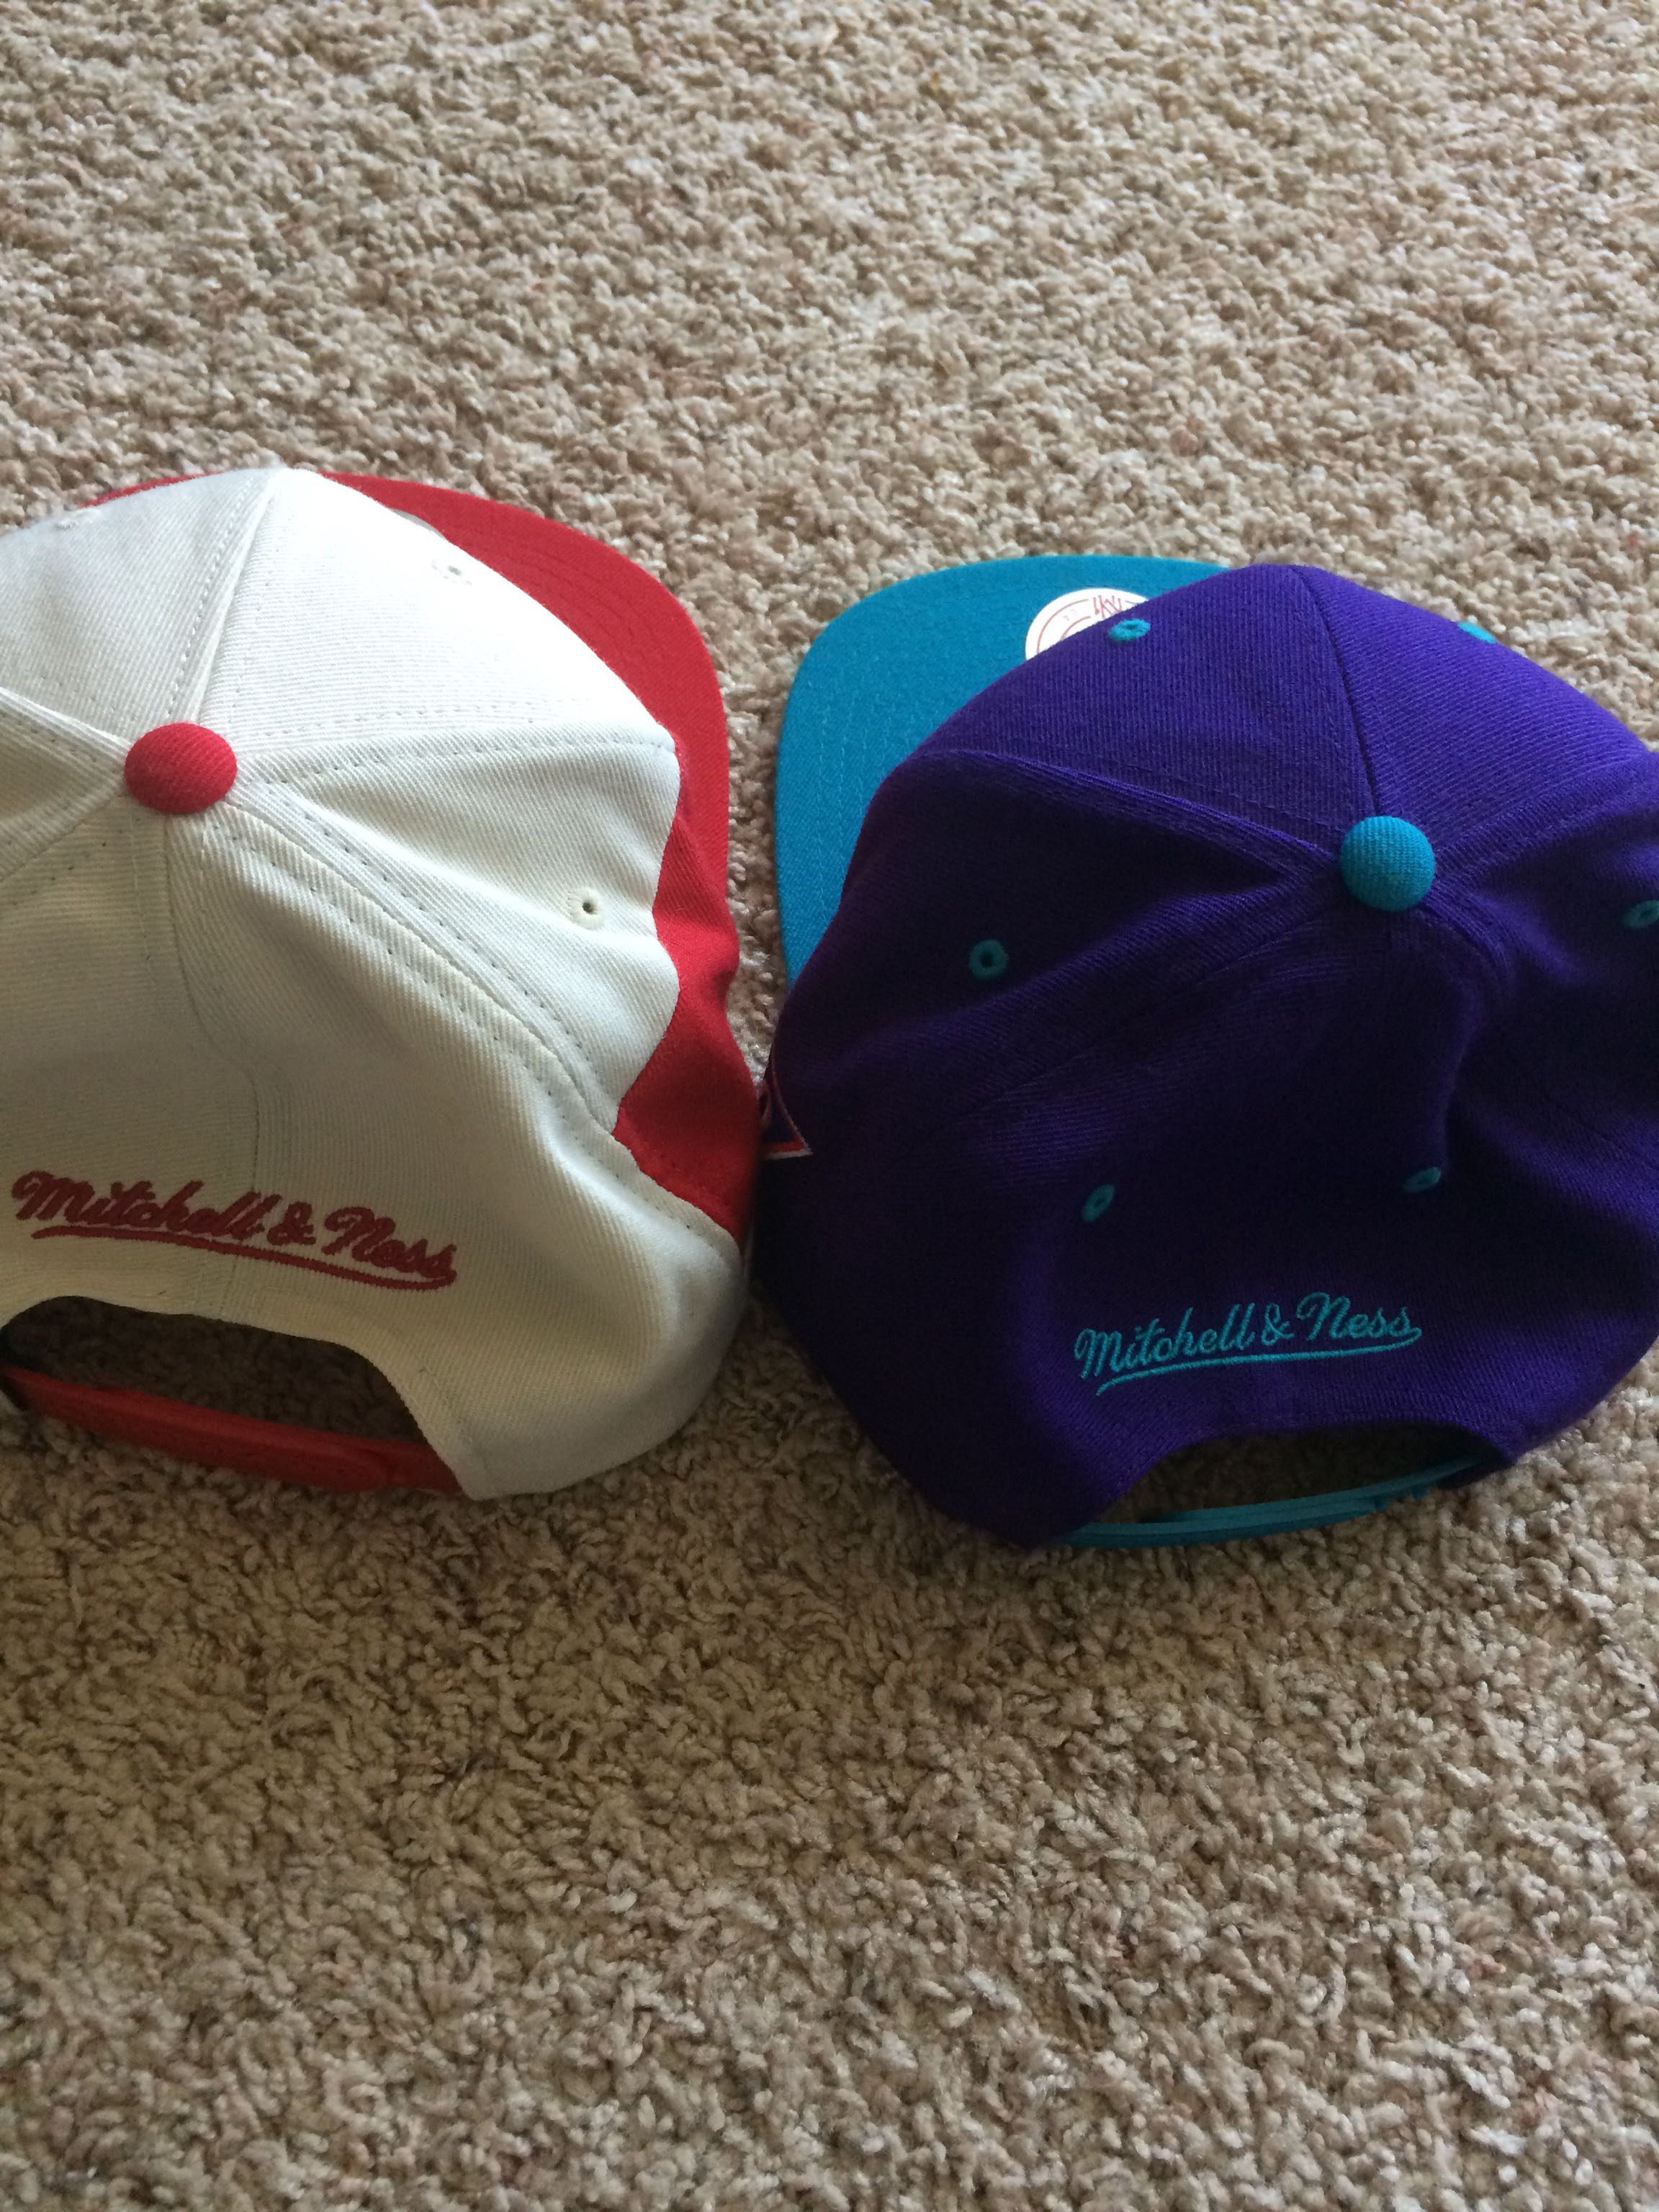 Mitchell And Ness SnapBack Hats